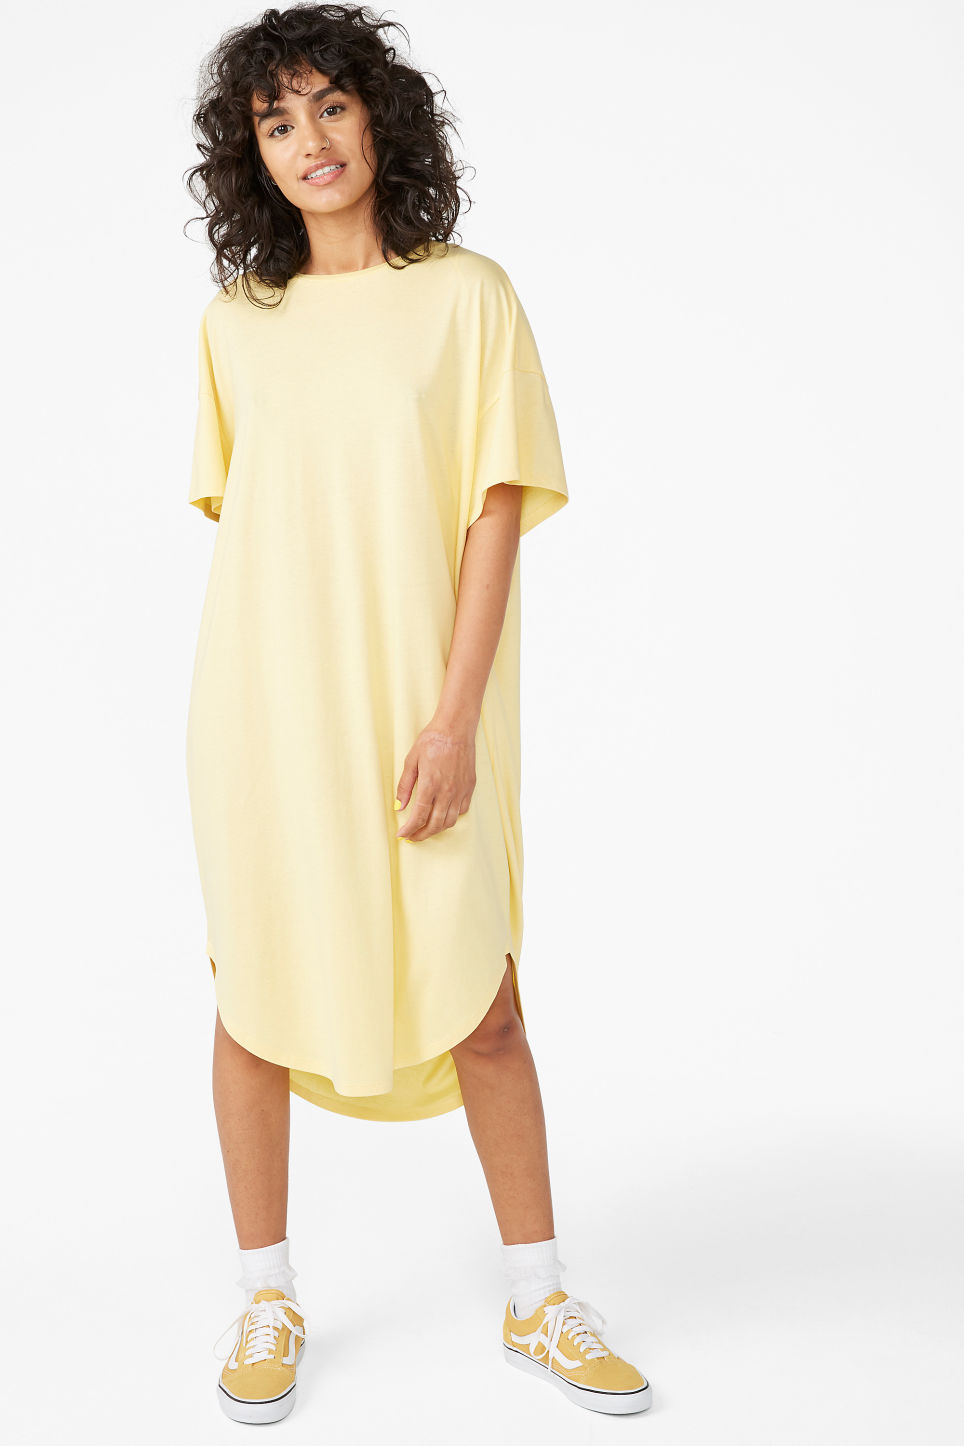 T Pale Monki Dresses Shirt Yellow Dress Oversized ZukXPOi